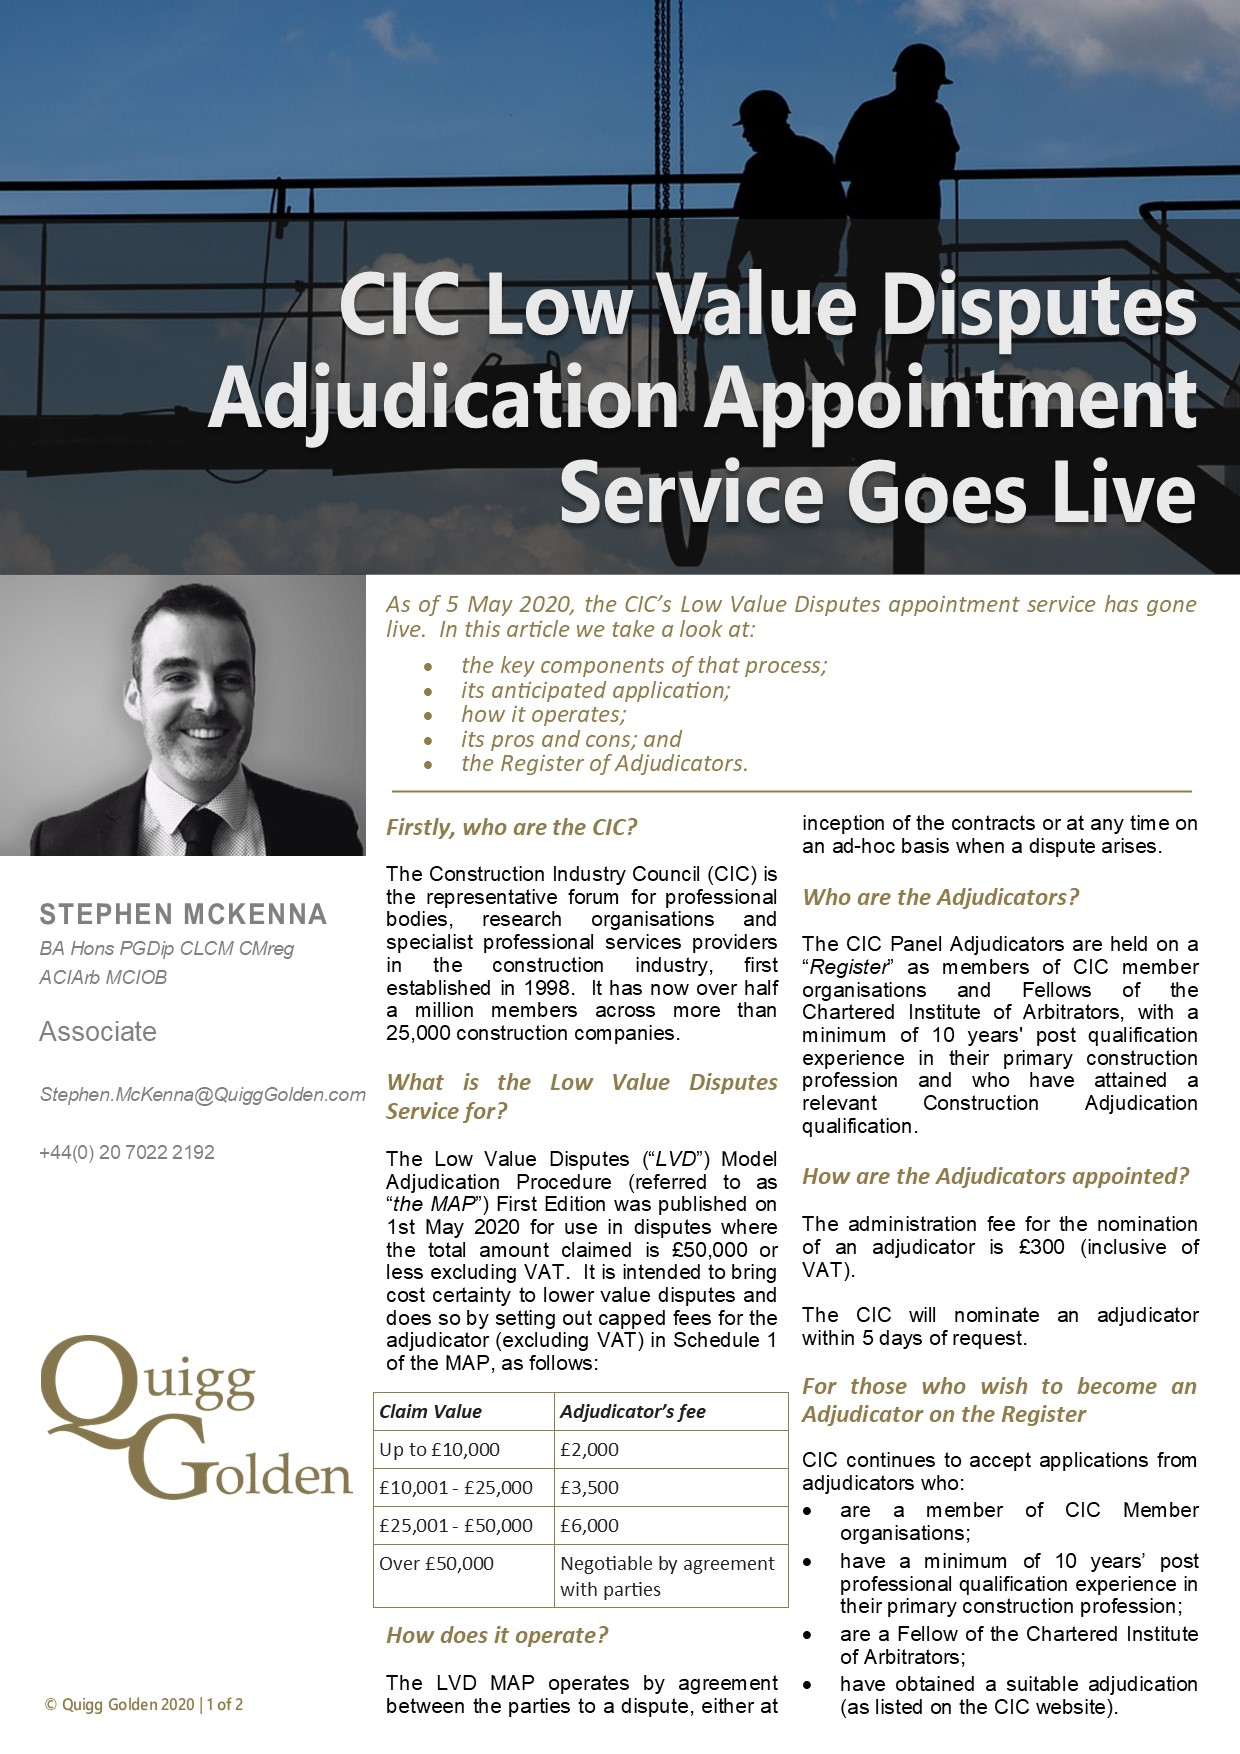 CIC Low Value Disputes Adjudication Appointment Service Goes Live Article Link